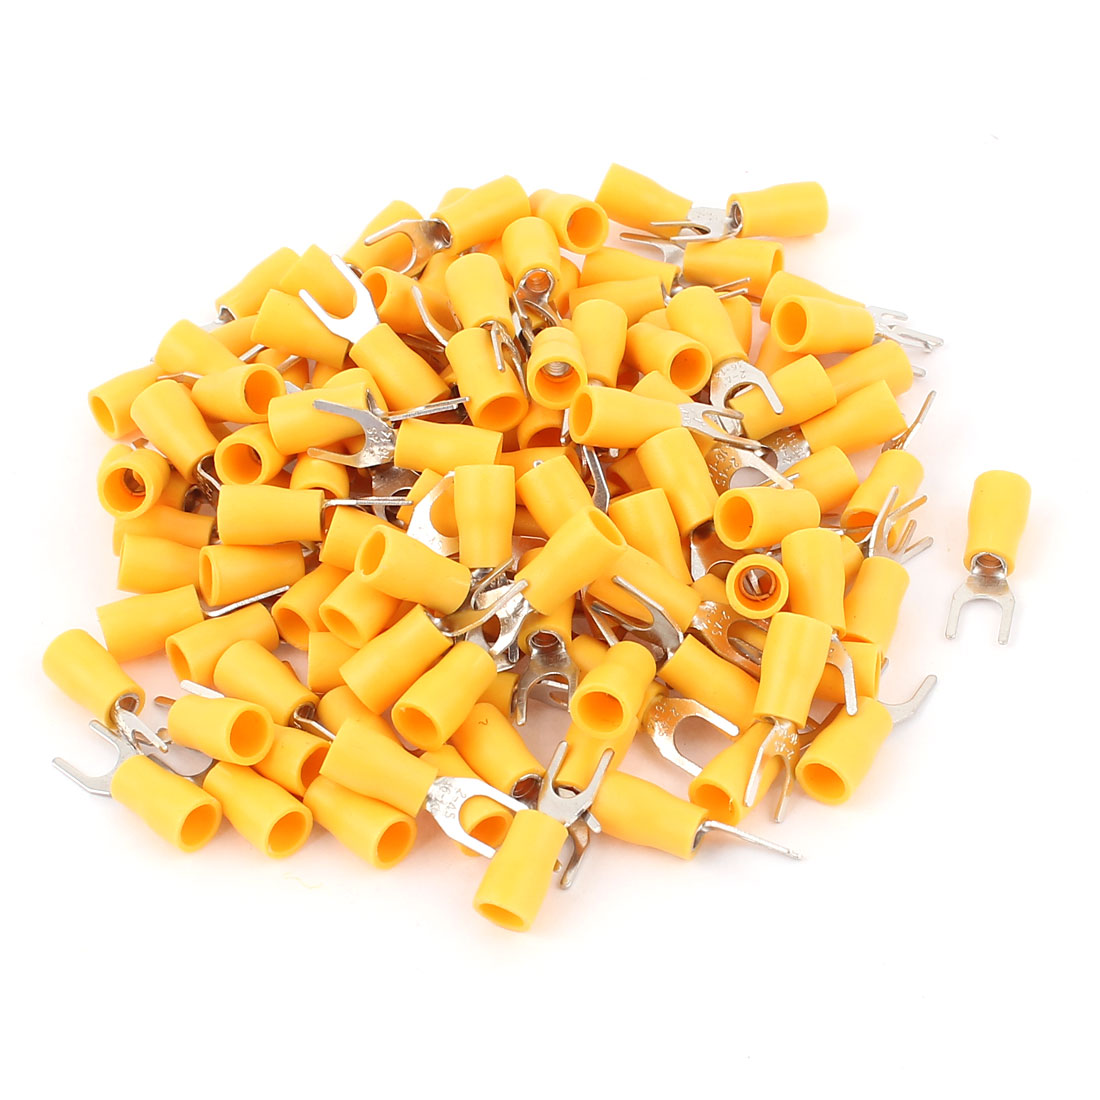 125Pcs Yellow Electrical Crimp Cable Connector Insulated Fork Terminals 16-14AWG